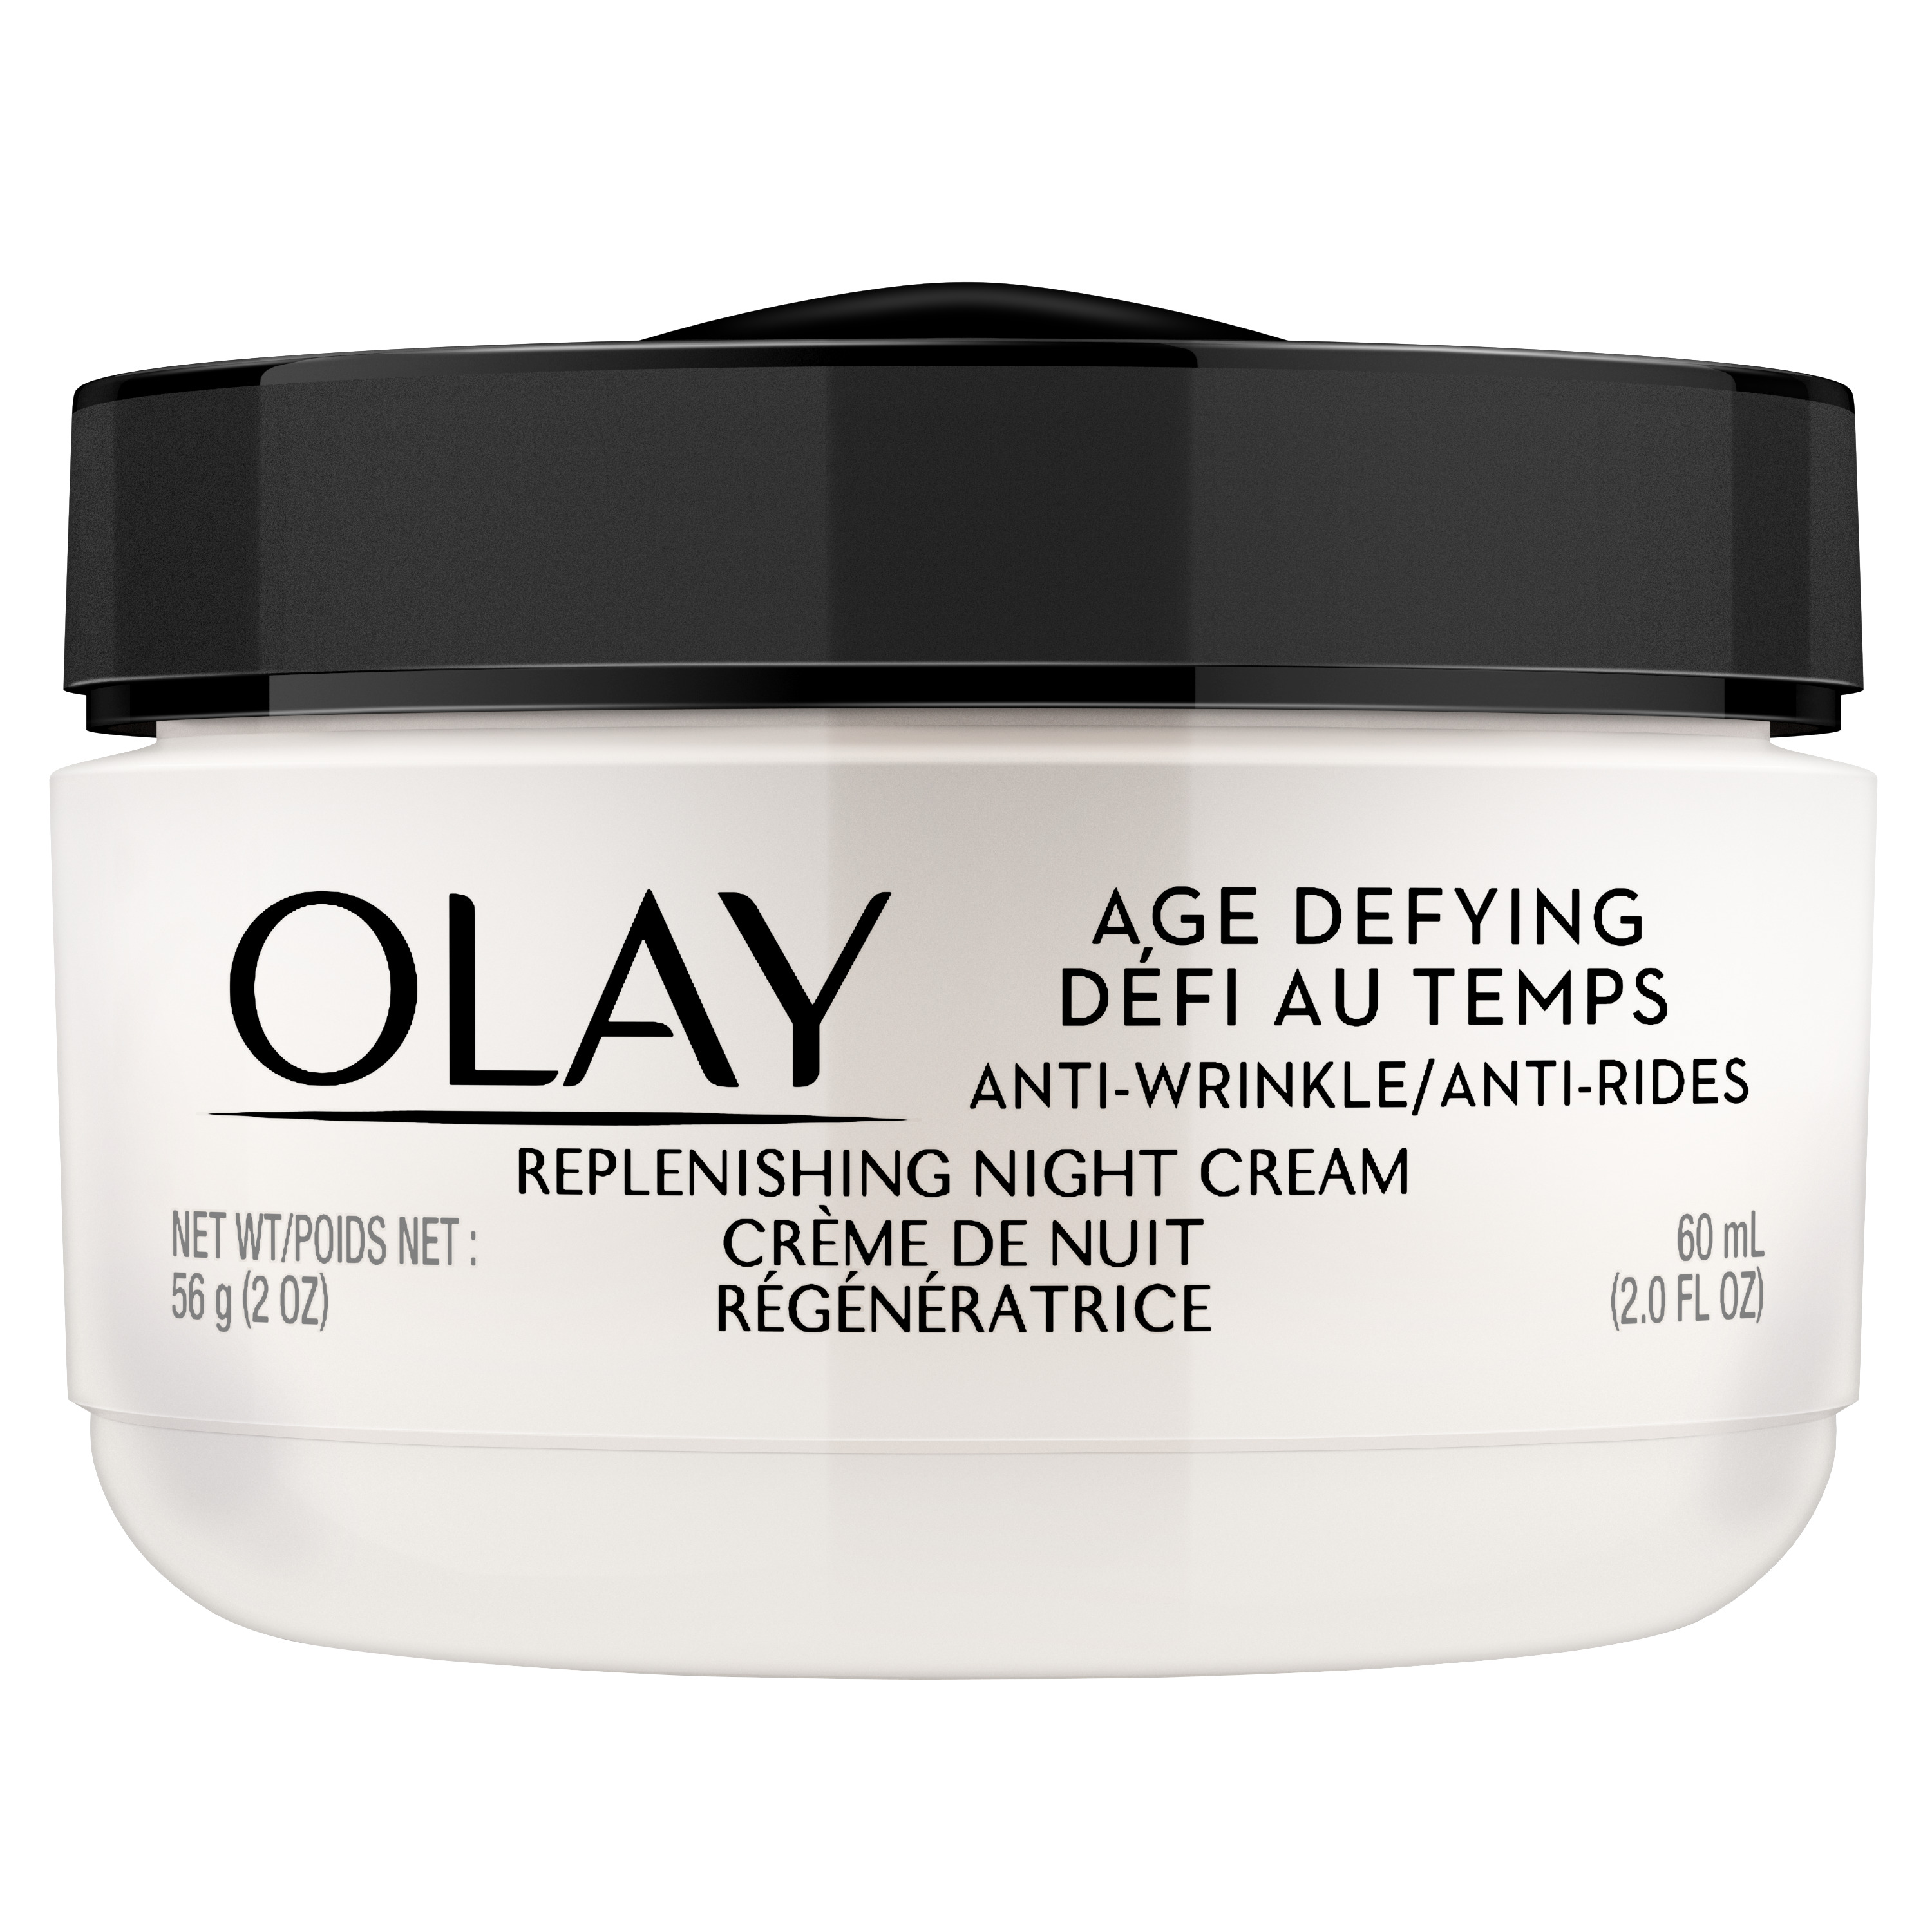 Olay Age Defying Anti-Wrinkle Night Face Cream, 2.0 oz